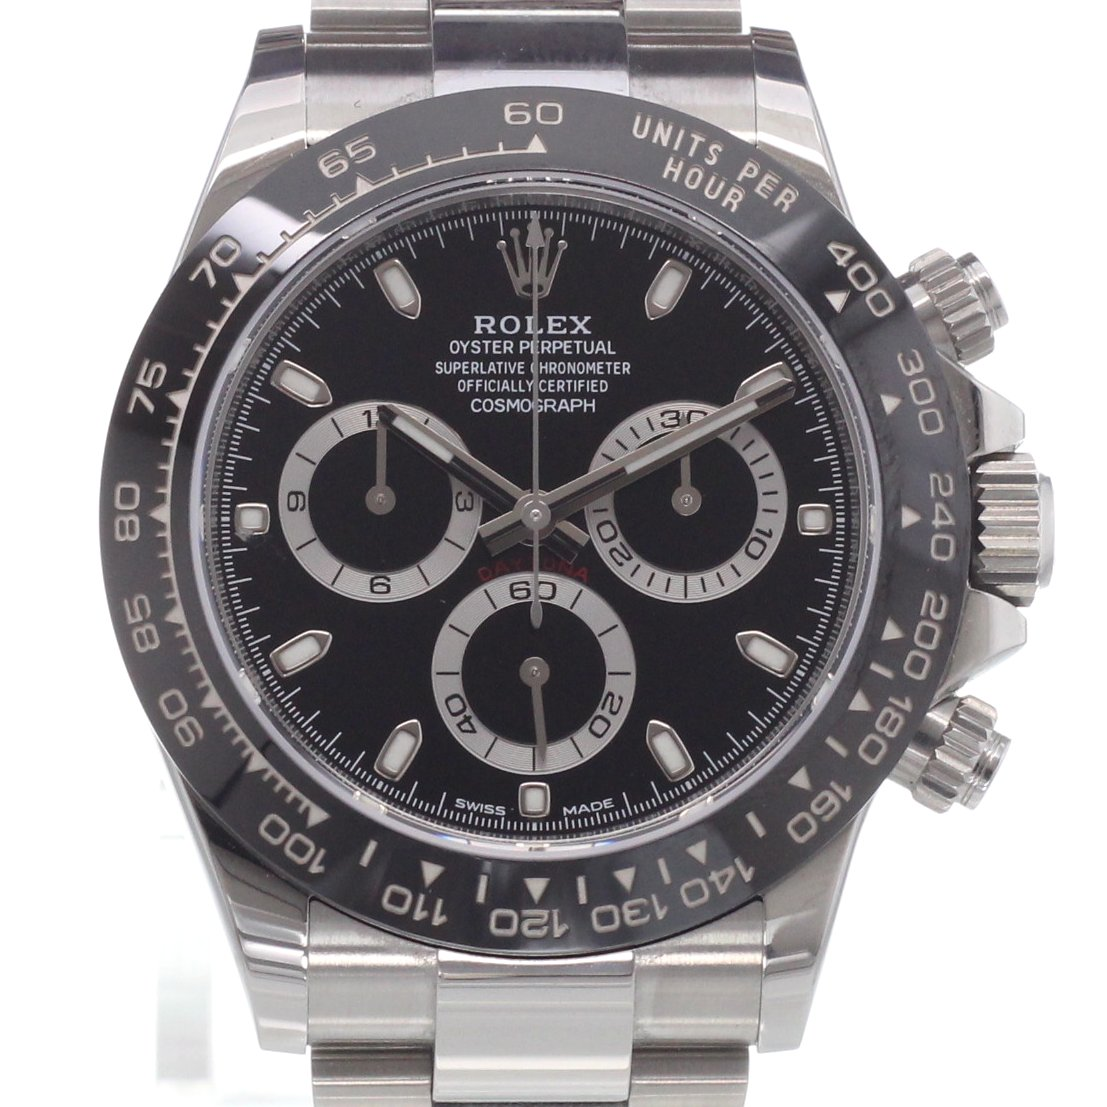 rolex cosmograph daytona 116500ln kaufen chronext. Black Bedroom Furniture Sets. Home Design Ideas